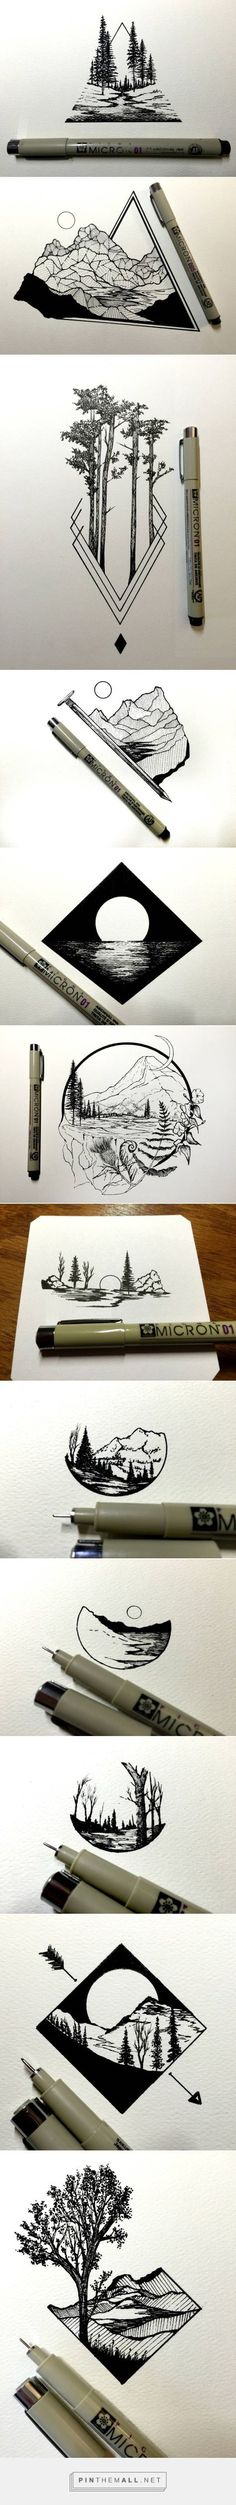 Daily Drawings by Derek Myers – Fubiz Media... - a grouped images picture